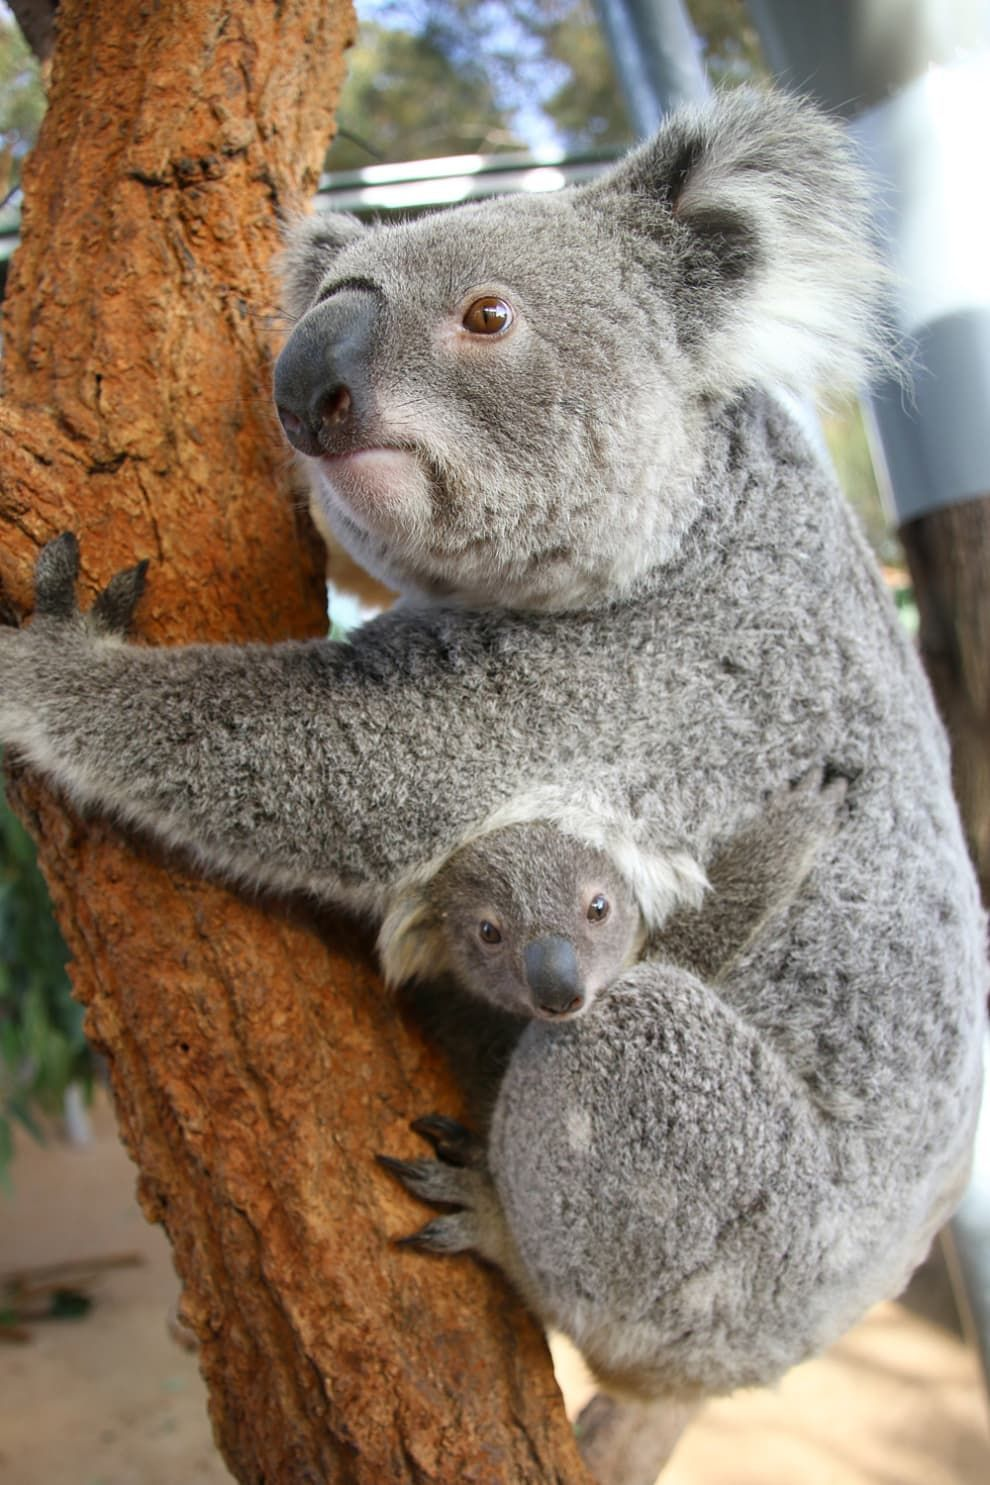 These Baby Koalas Are Newly Out Of The Pouch And Omg They Are Cute Babyanimalpics Baby Koala Koala Koalas